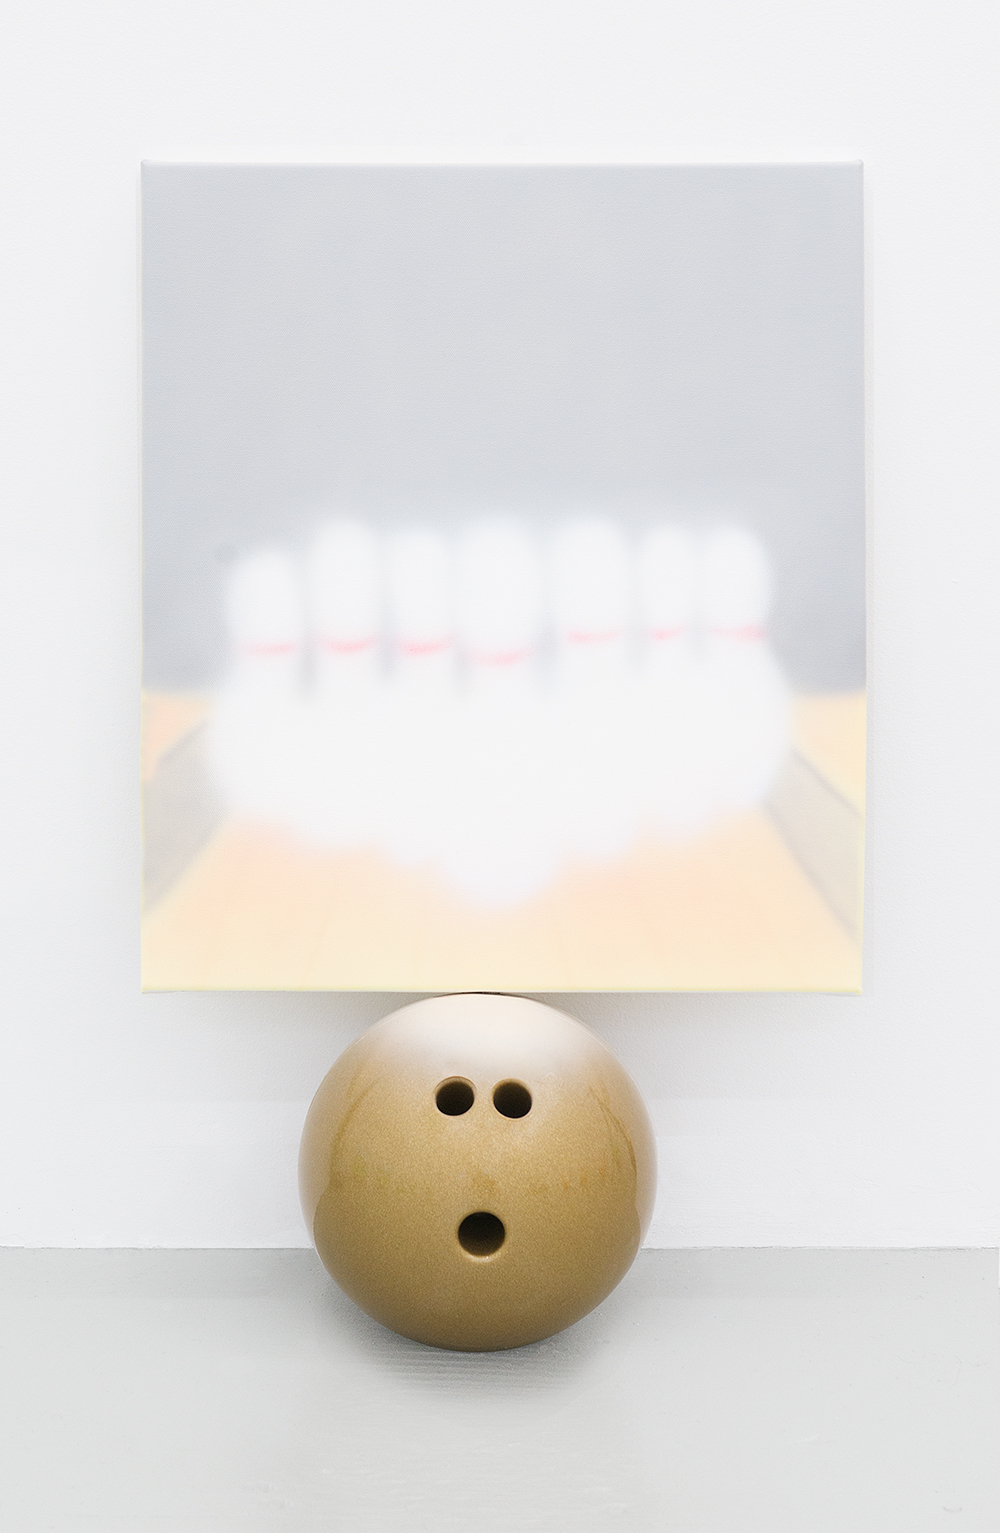 Jonny Paul Gillette Goal on bowling ball, 2015 Acrylic polymer on canvas, bowling ball